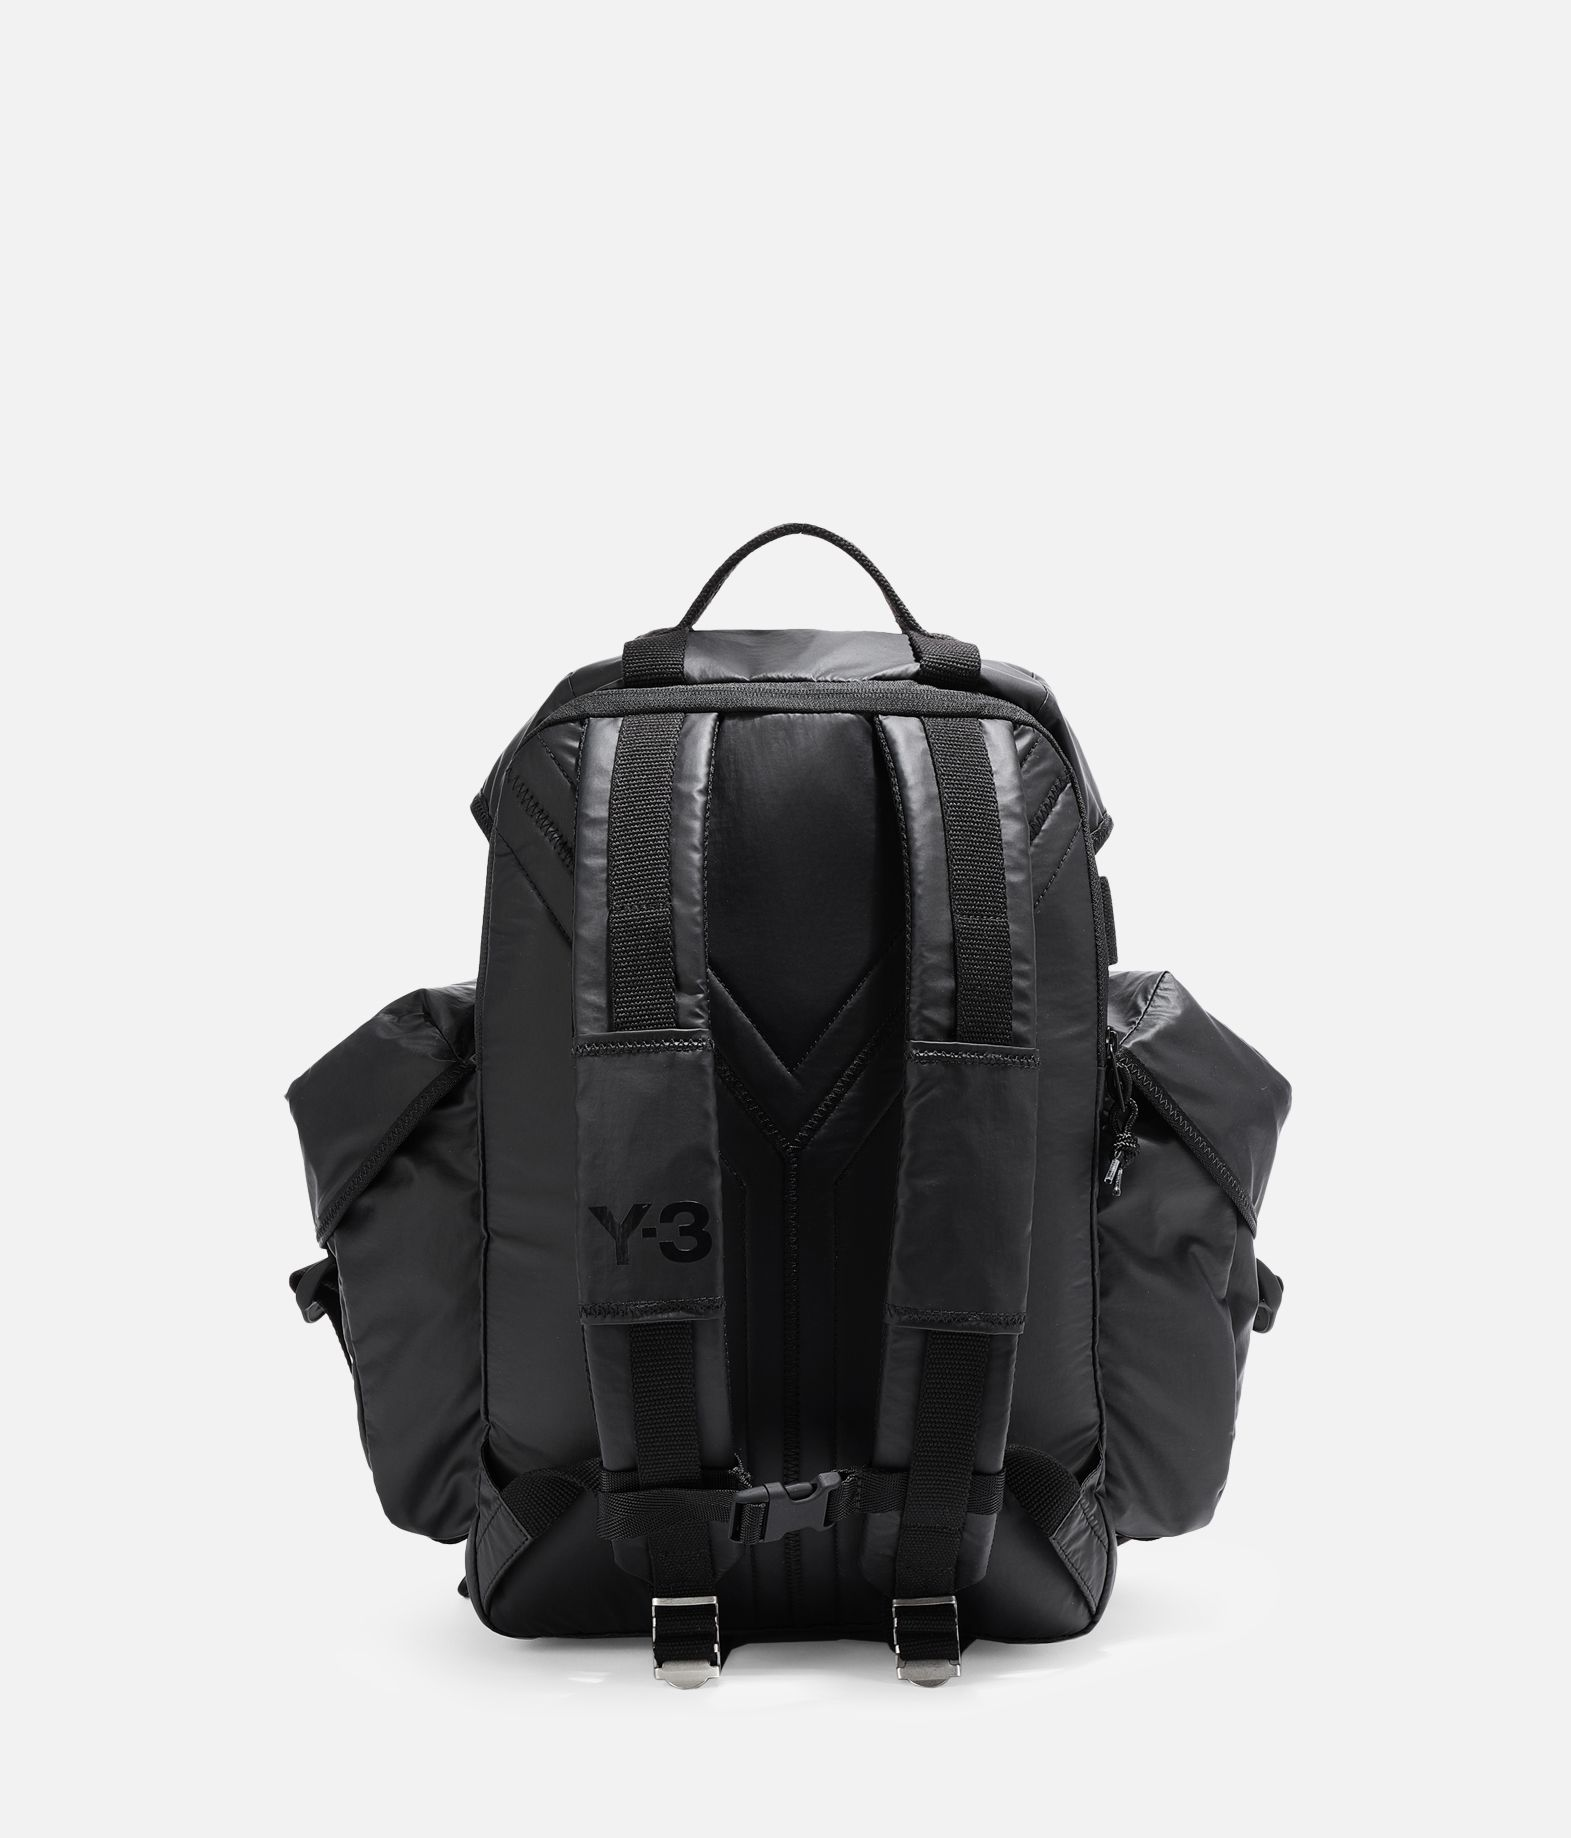 Y-3 Y-3 XS Utility Bag Backpack E d